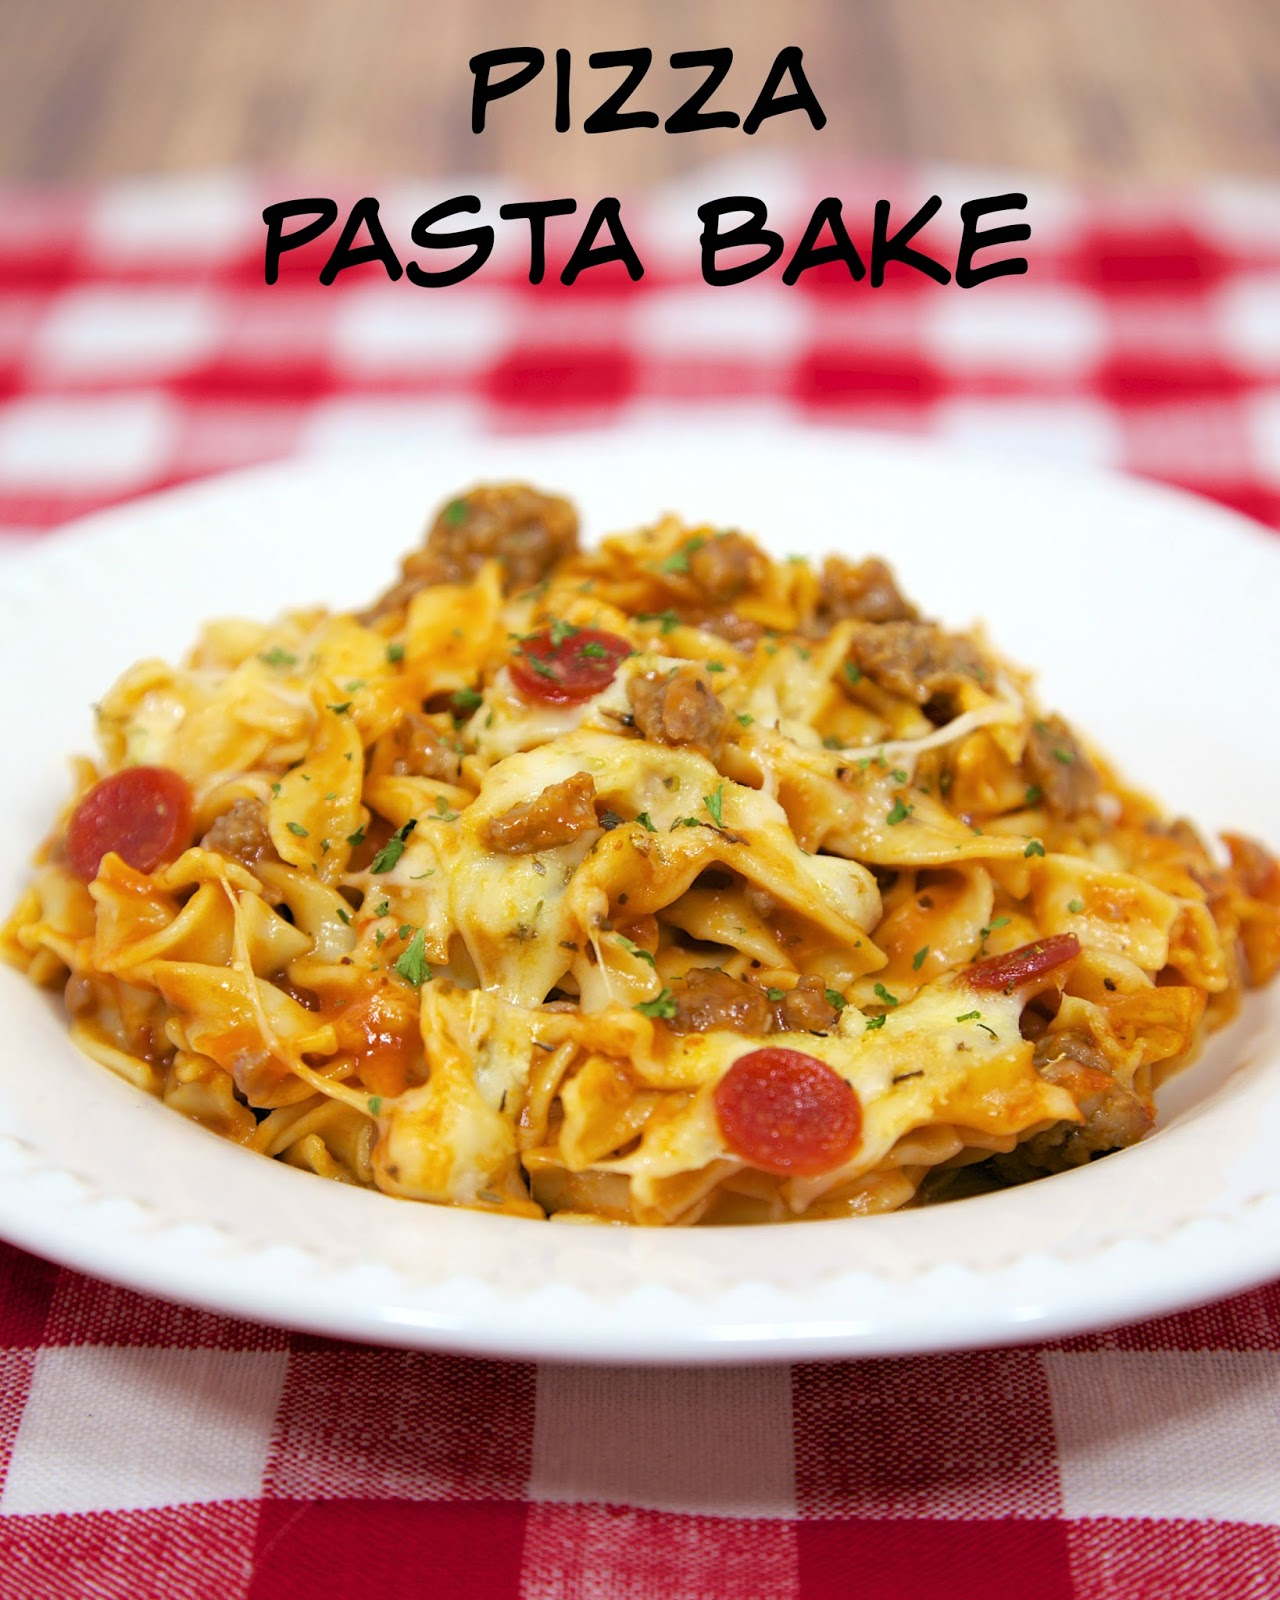 Pizza Pasta Bake - cheesy pasta bake with pizza sauce and your favorite pizza toppings! Hamburger or sausage, egg noodles, cheese soup, mozzarella cheese, parmesan cheese and pepperoni. Great weeknight meal! Kid-friendly and a good freezer meal! We love this easy pasta casserole recipe!